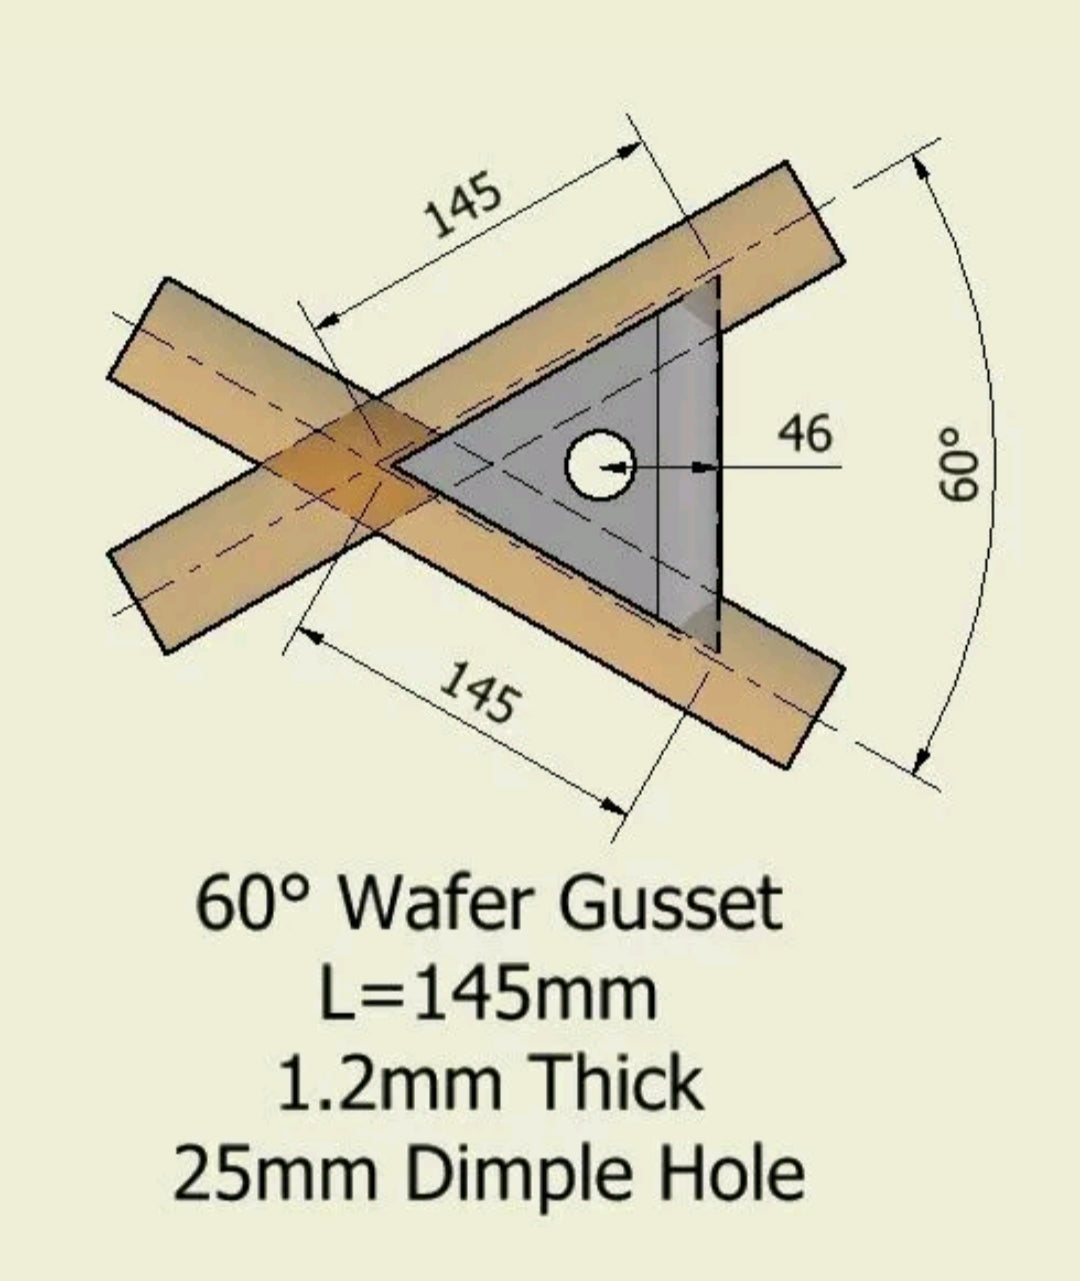 60 Deg Roll Cage Dimple Die Gusset - Wafer Type